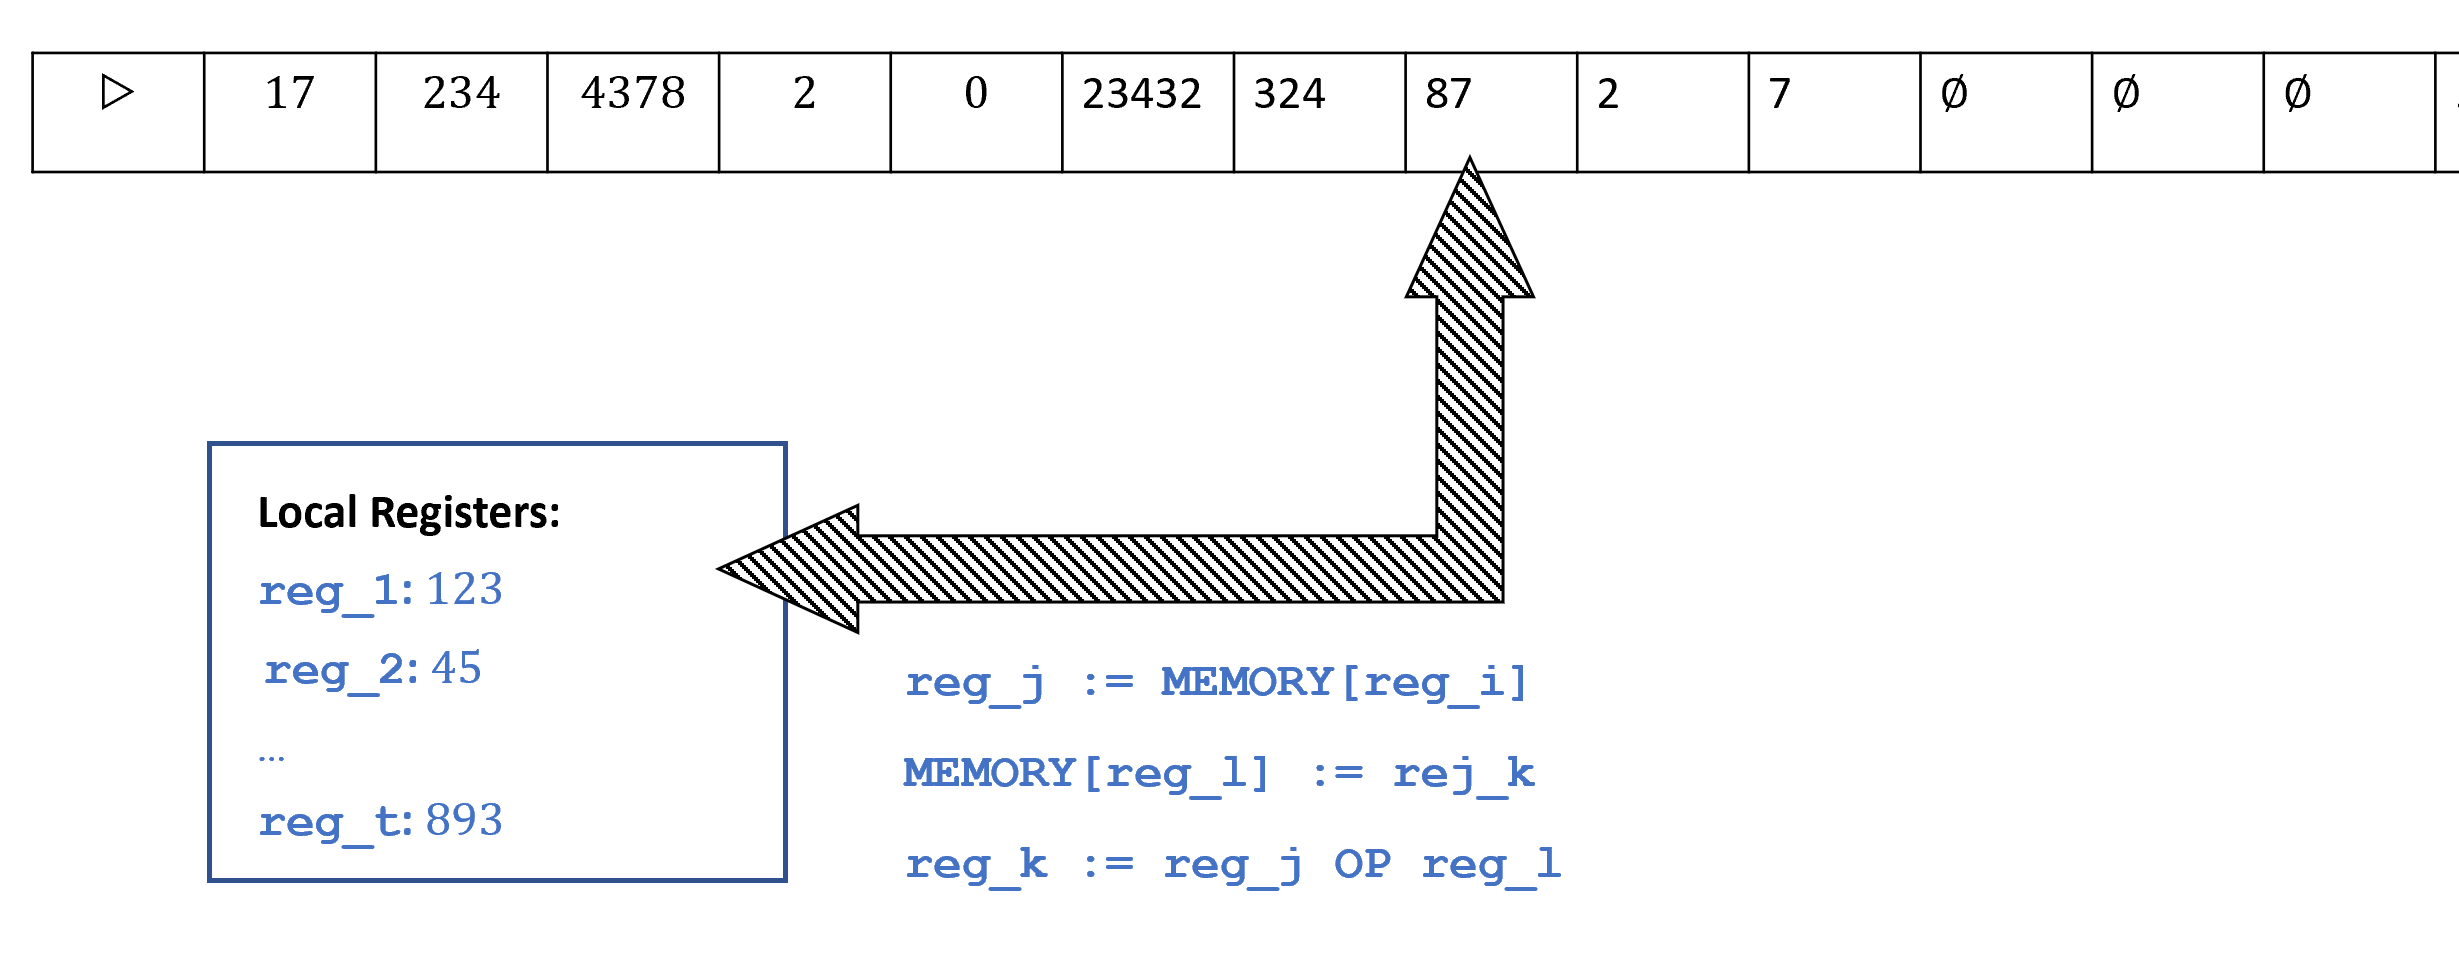 A RAM Machine contains a finite number of local registers, each of which holds an integer, and an unbounded memory array. It can perform arithmetic operations on its register as well as load to a register r the contents of the memory at the address indexed by the number in register r'.